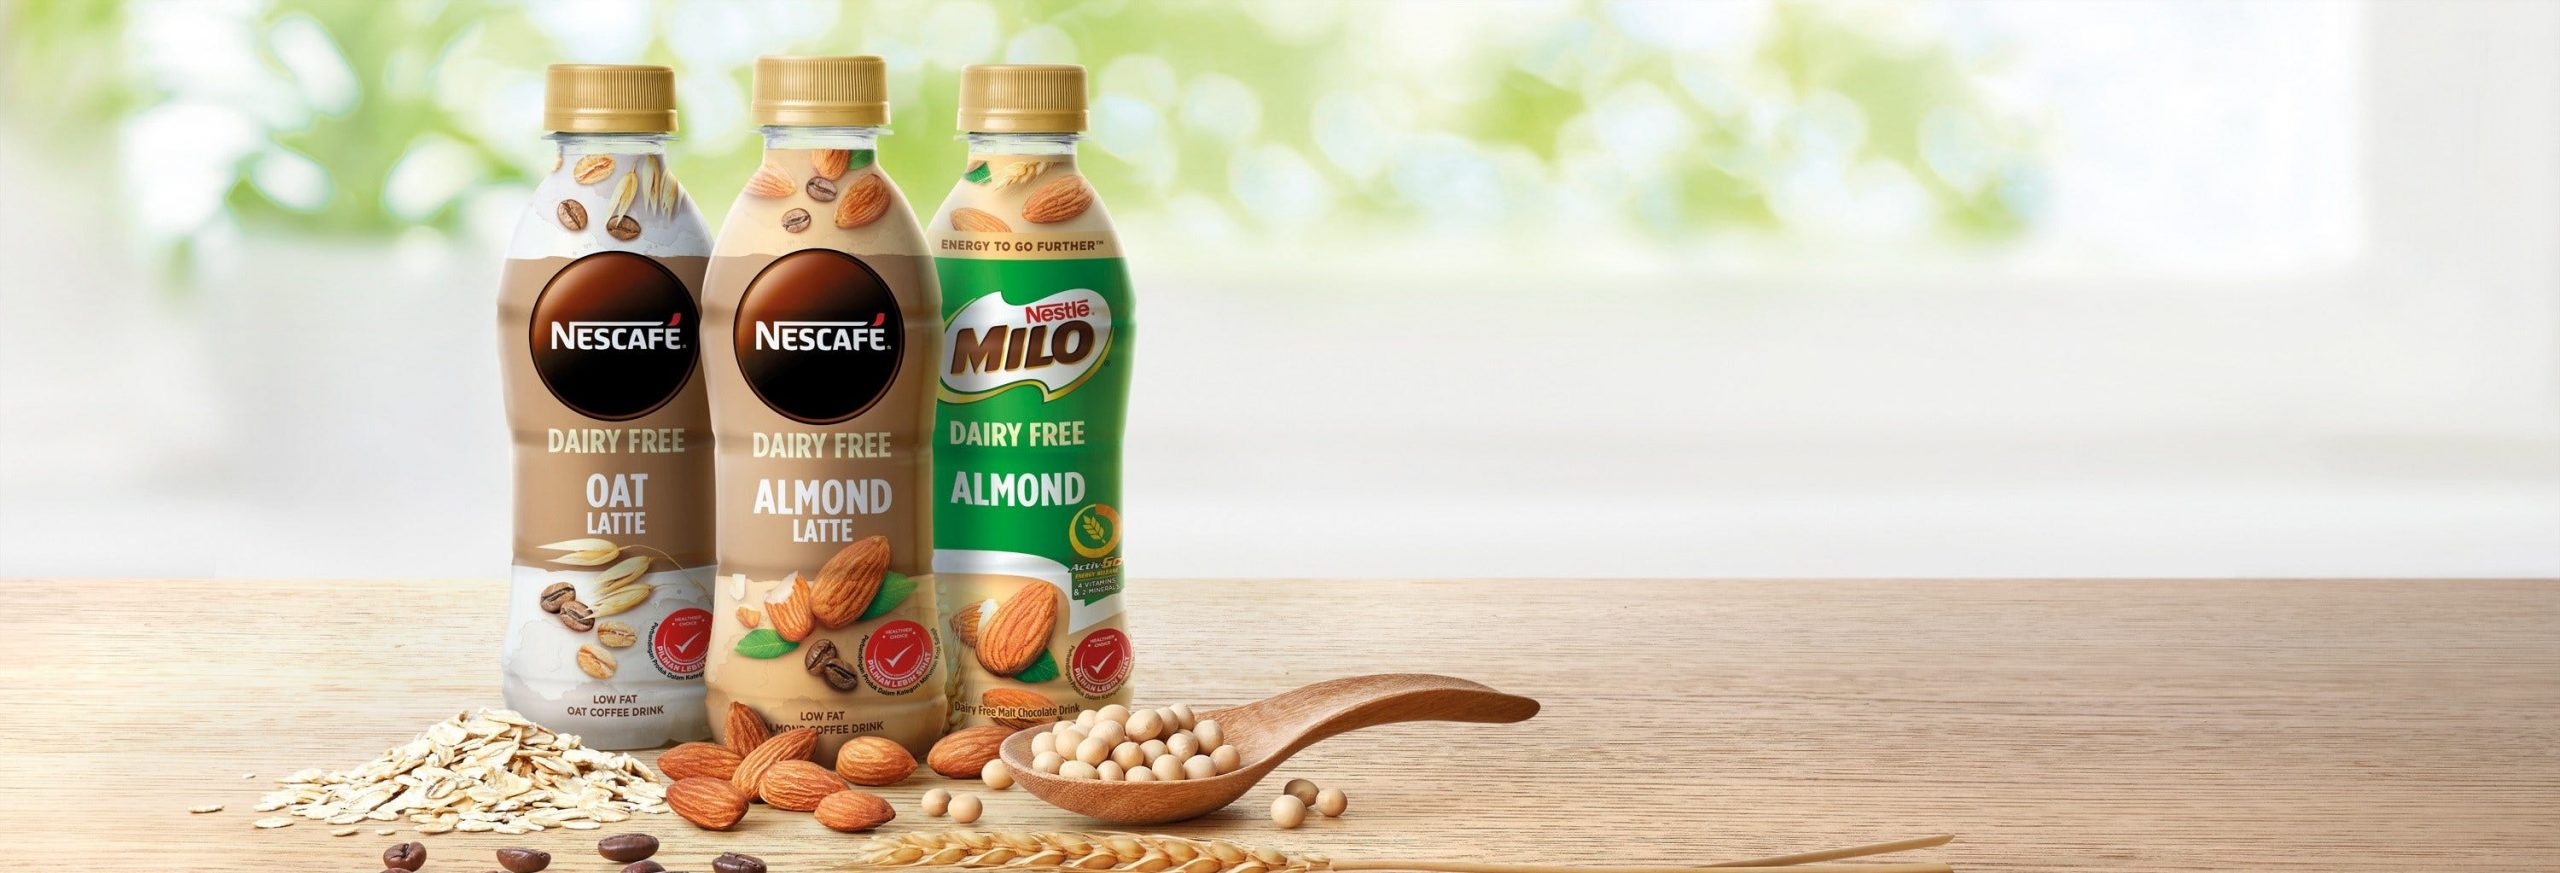 Milk-free Milo and meatless 'pork': Nestle and other brands bet big on plant-based food in Asia - WRCBtv.com